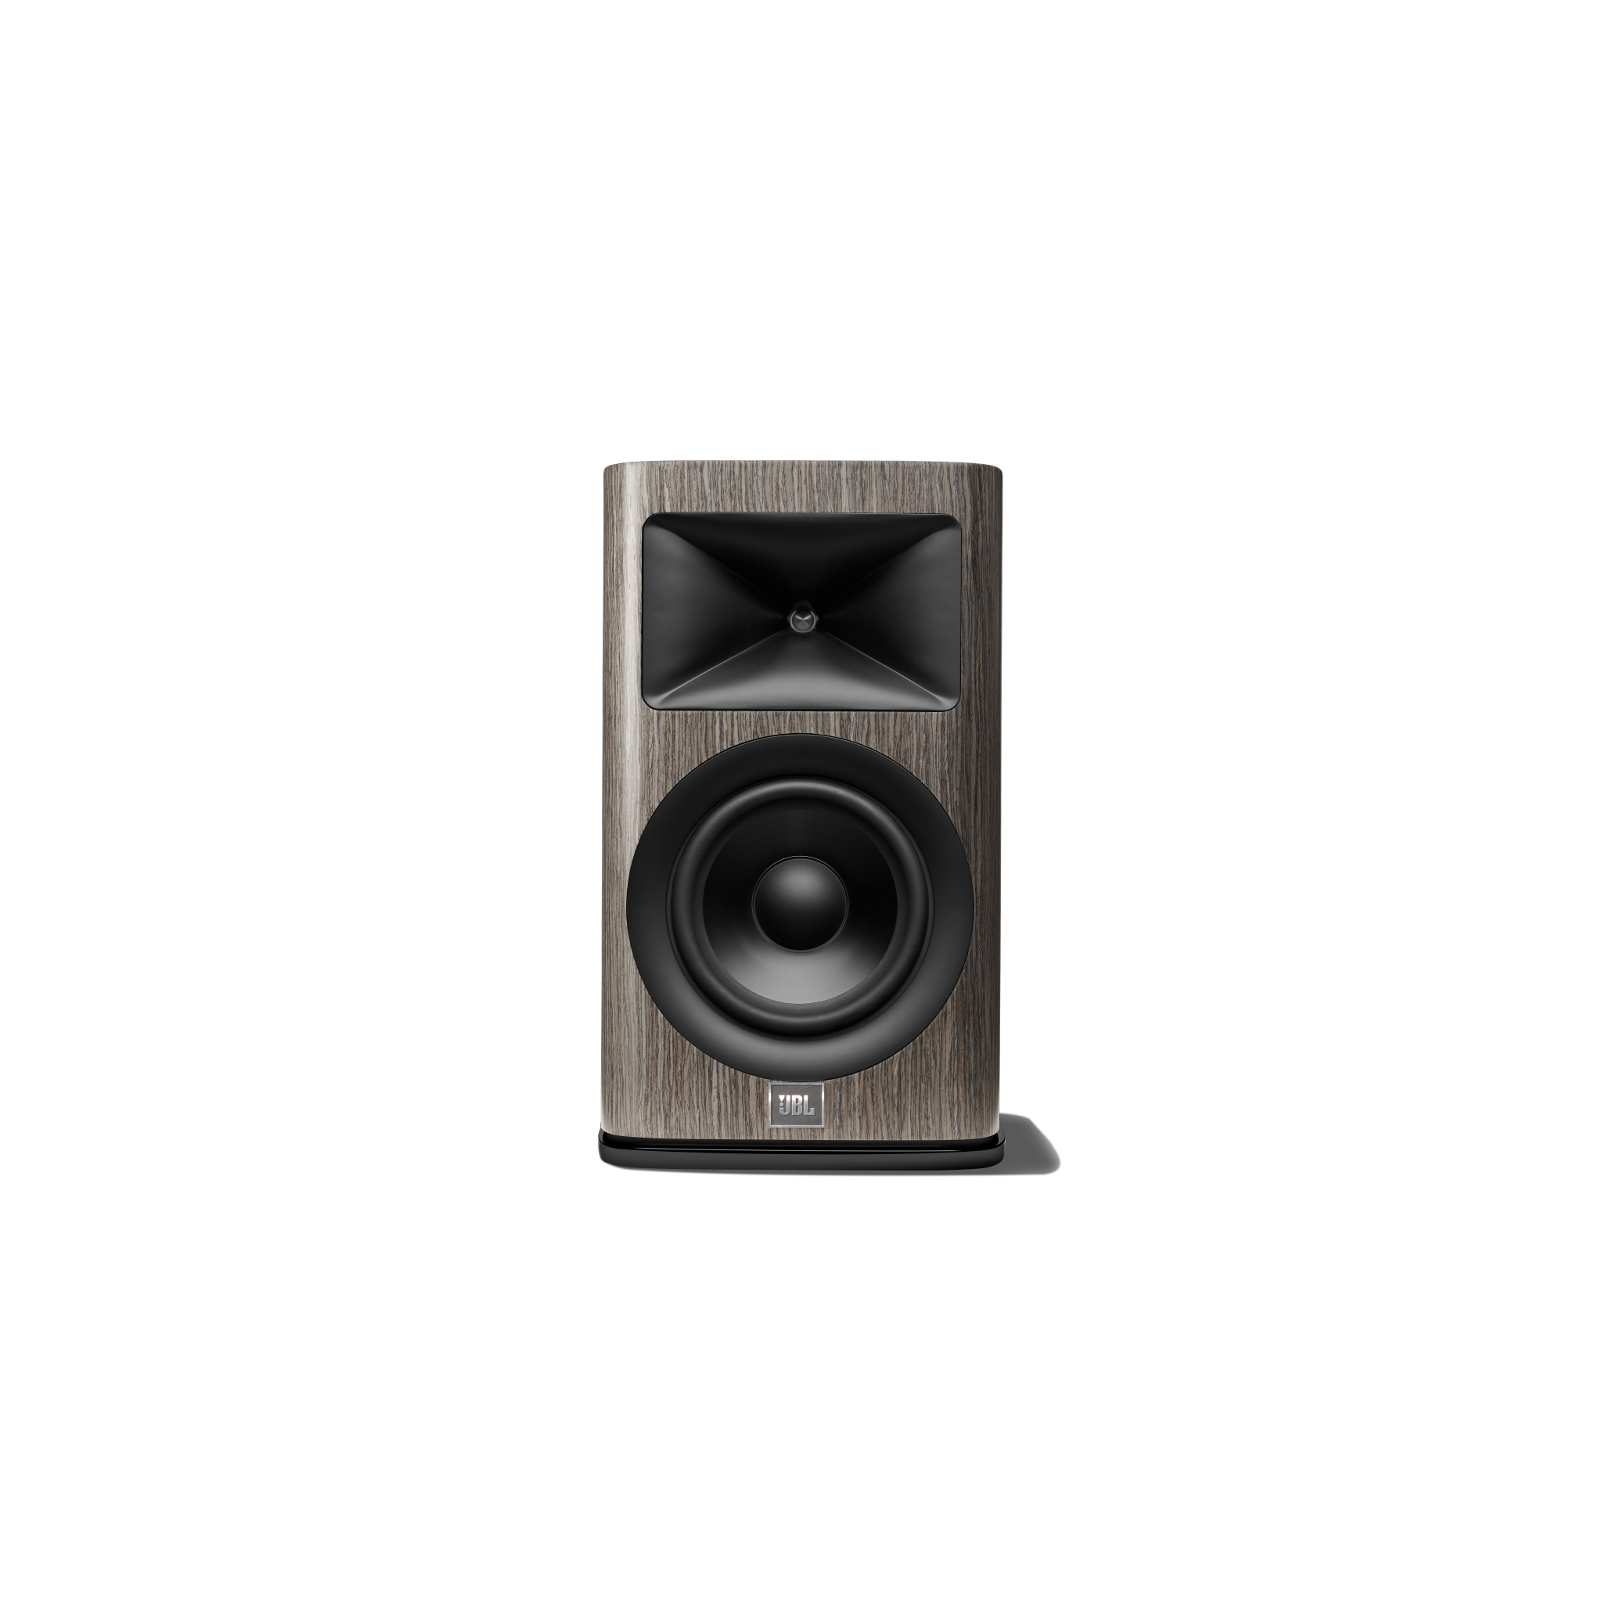 HDI-1600 - Grey Oak - 2-way 6.5-inch (165mm) Bookshelf Loudspeaker - Hero